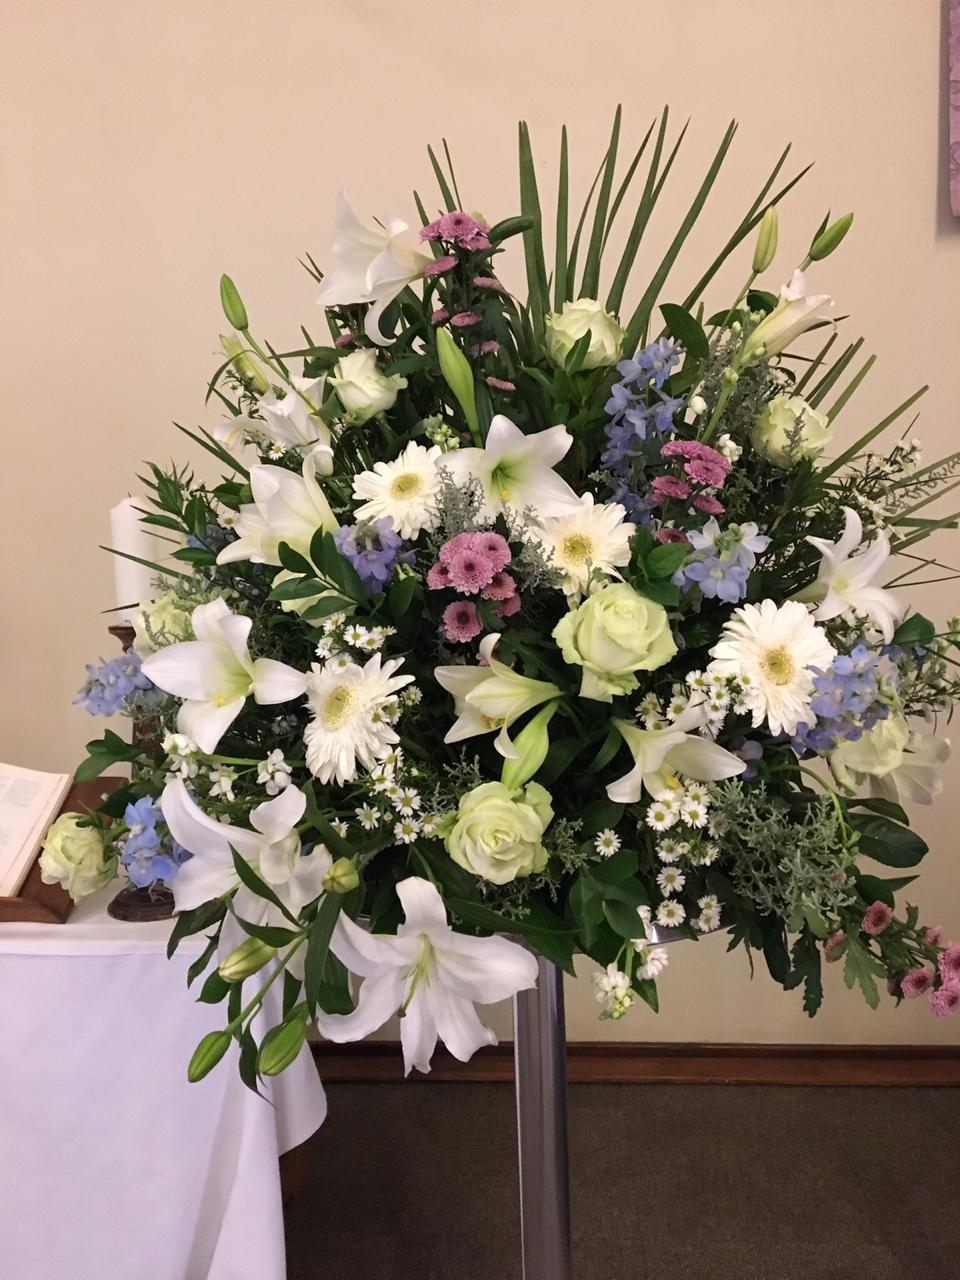 Church arrangement with white pinks and purple colored flowers